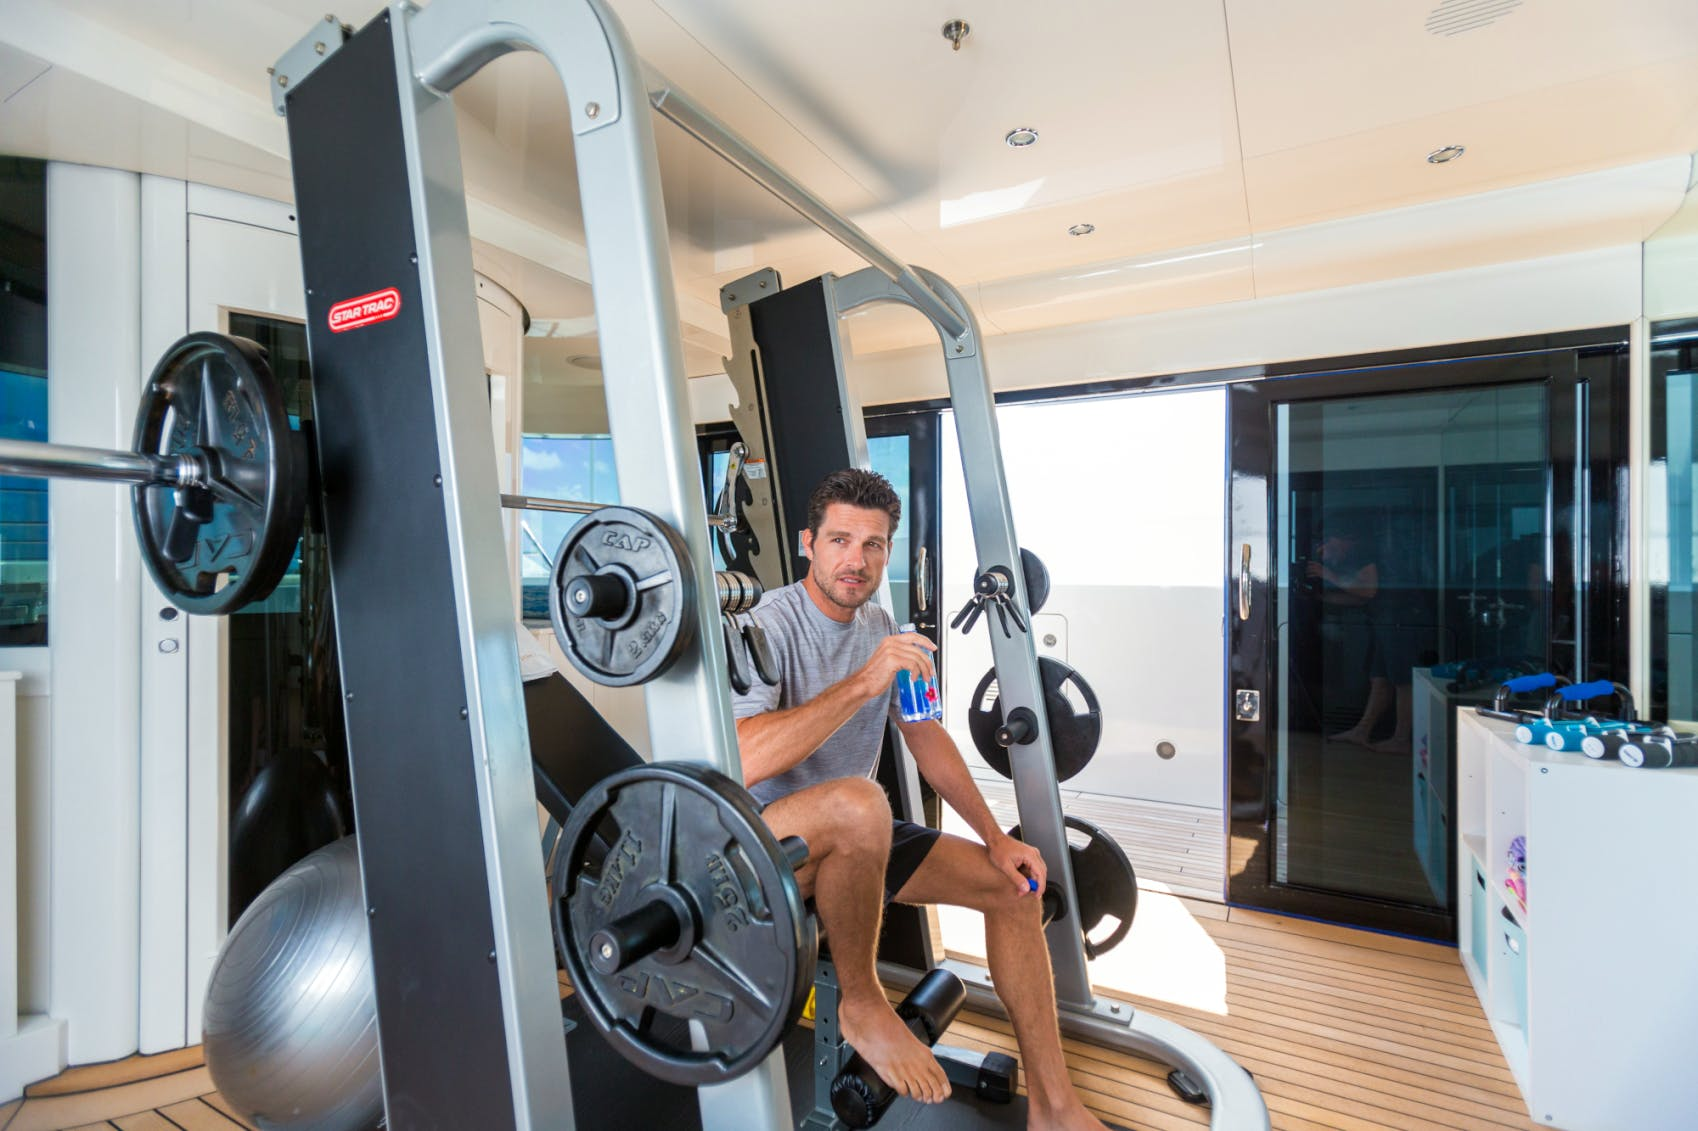 Benetti charter yacht LUMIERE onboard gym